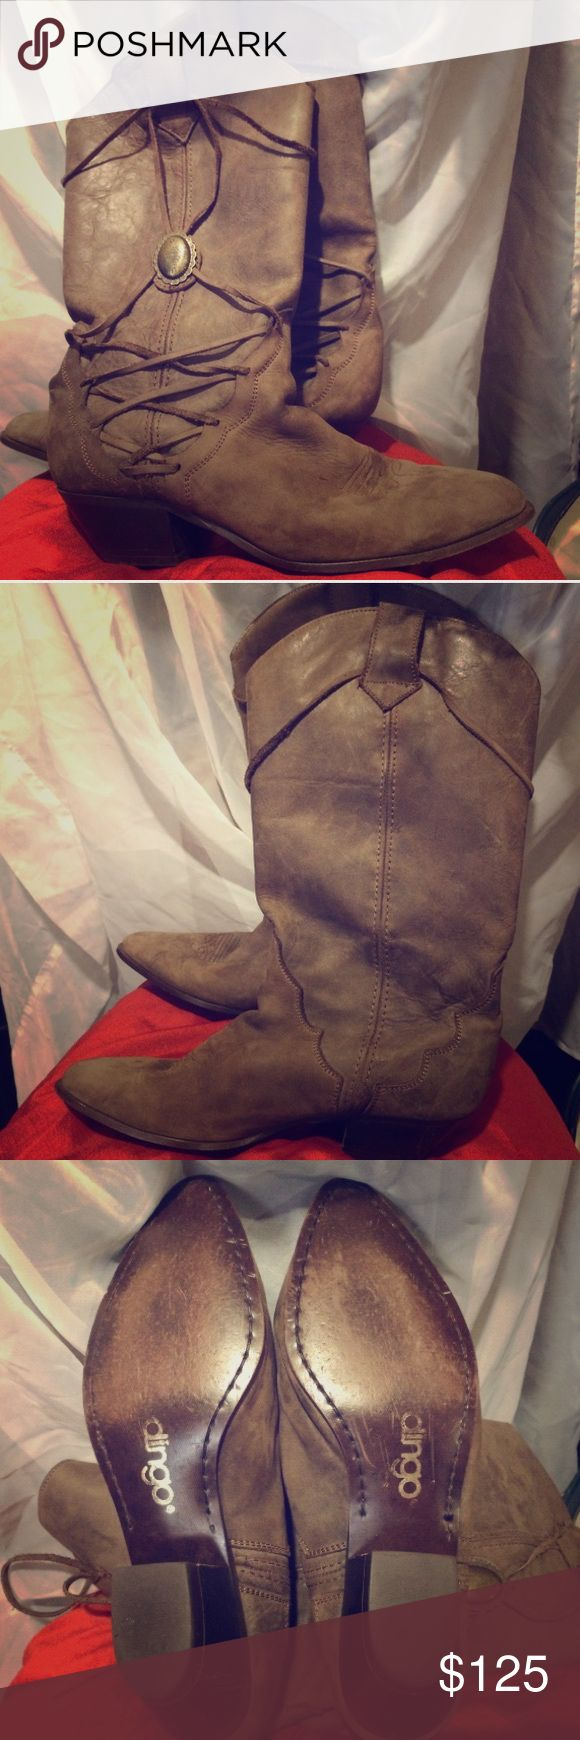 Rare Vintage Dingo Boots Brown distressed leather western boots with lace up side accent by Dingo. Rare and hard to find boots! Size 7 Dingo Shoes